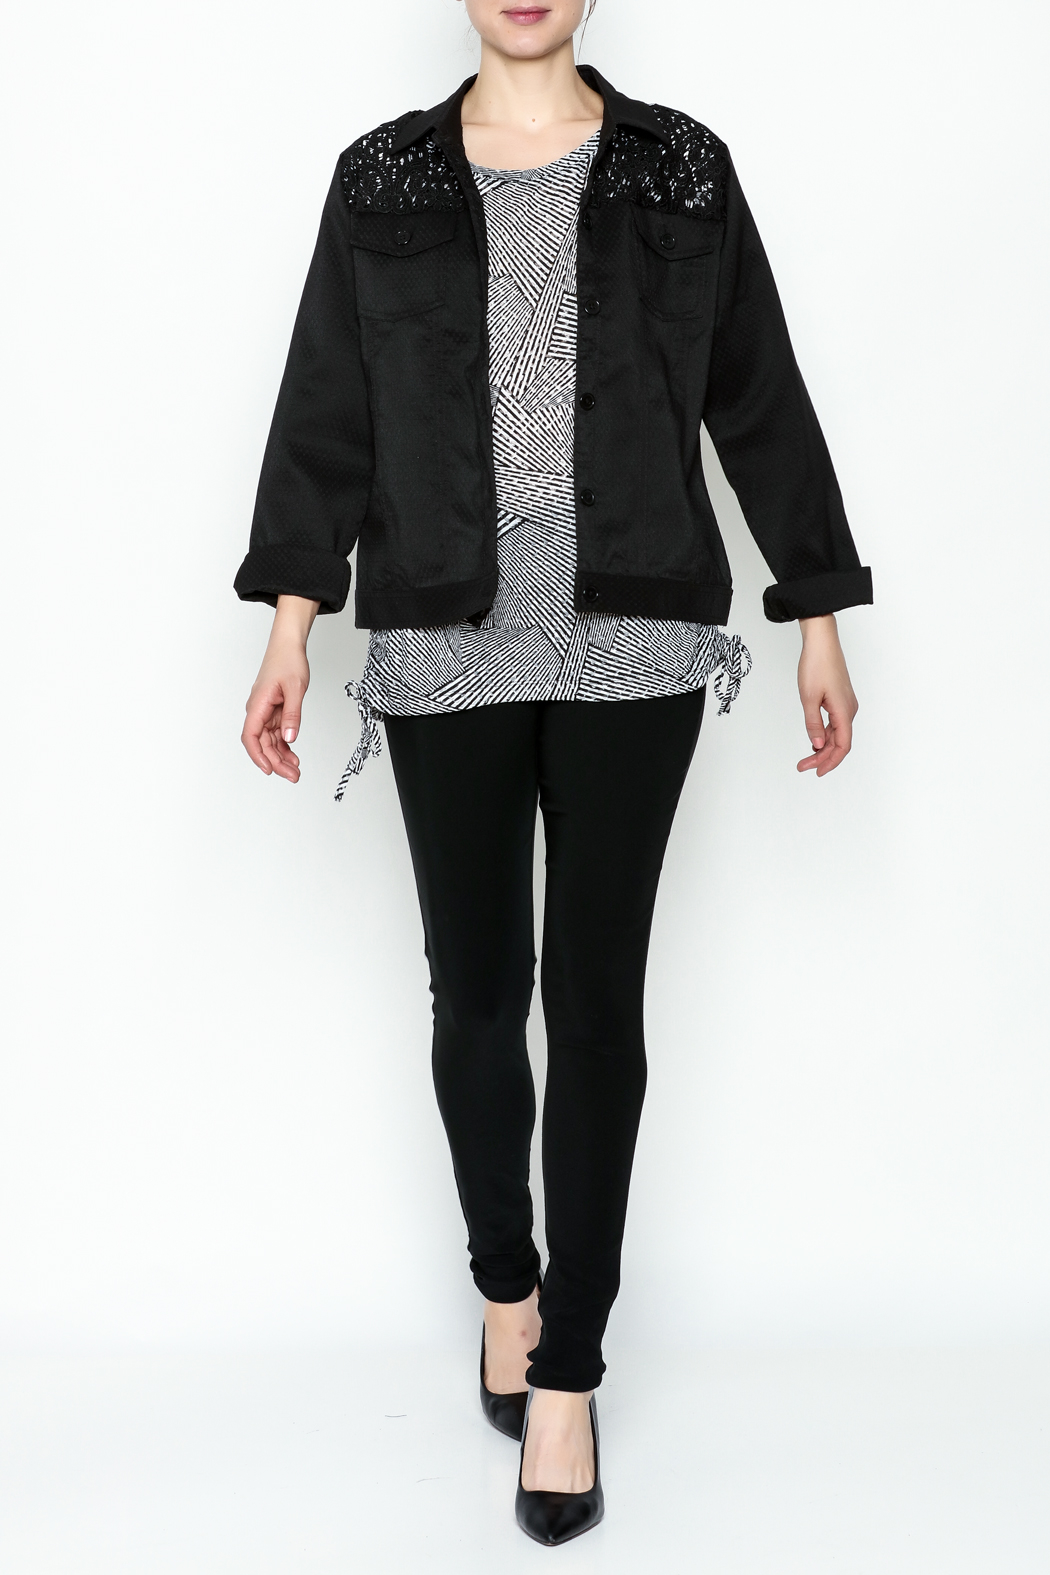 Erin London Black Lace Classy Jacket - Side Cropped Image